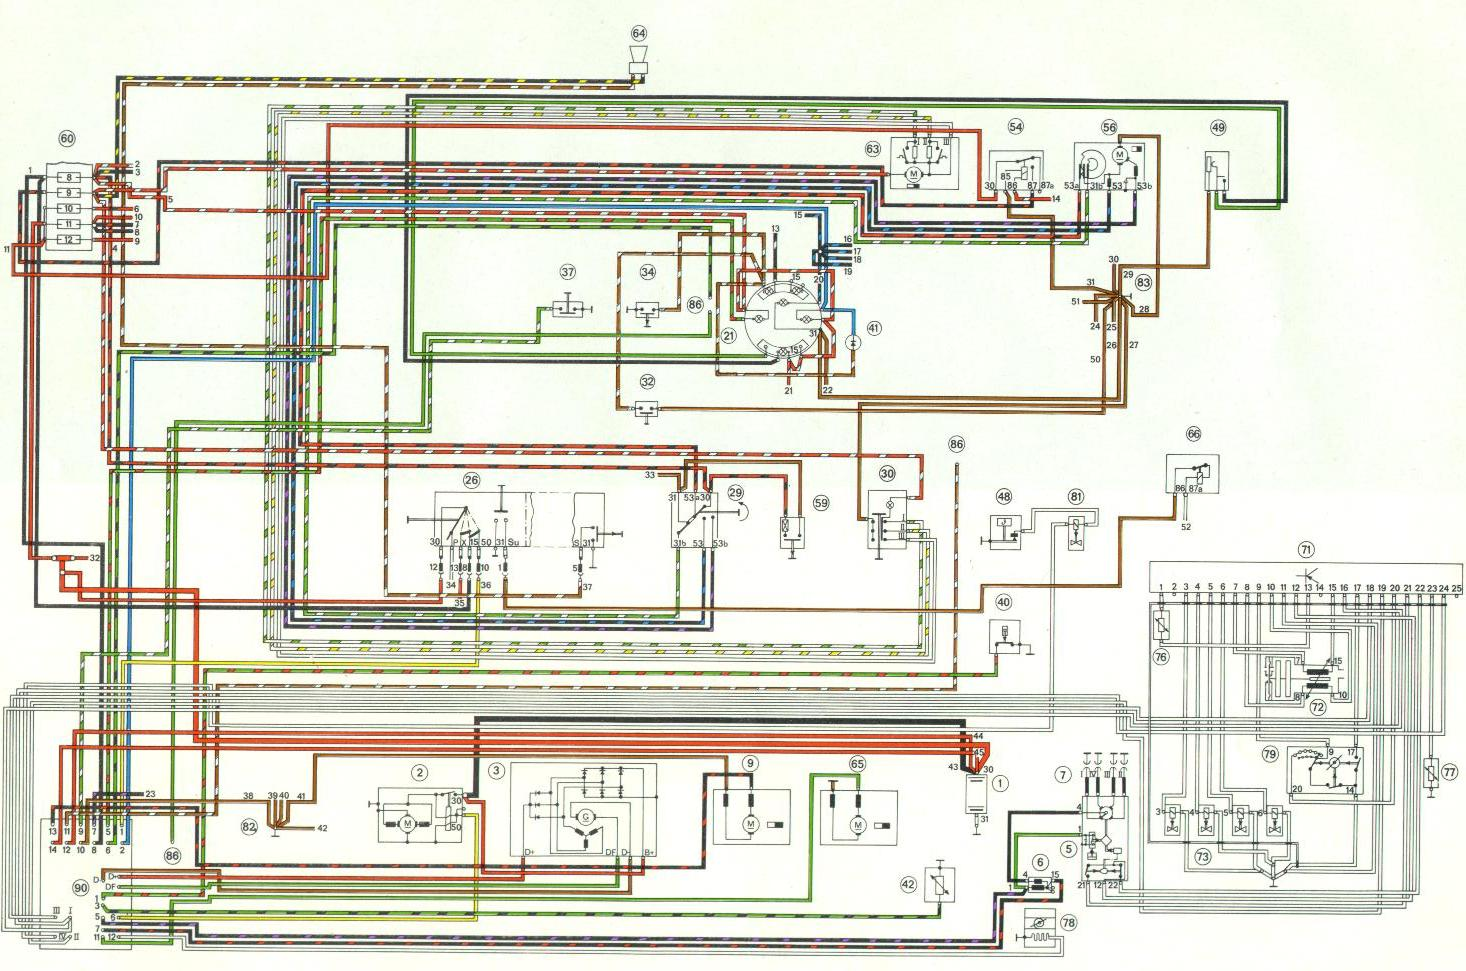 1975 911 tach wiring diagram porsche 911 carrera wiring diagram